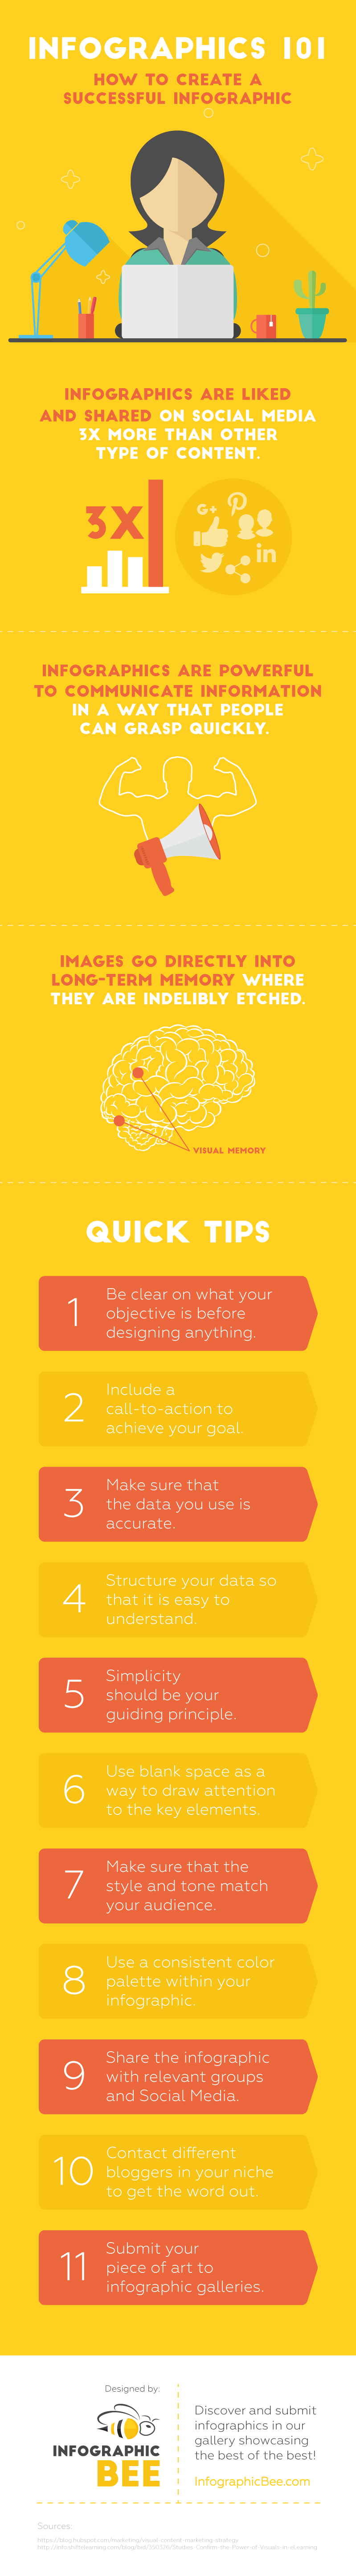 Infographics 101: How to create a successful infographic